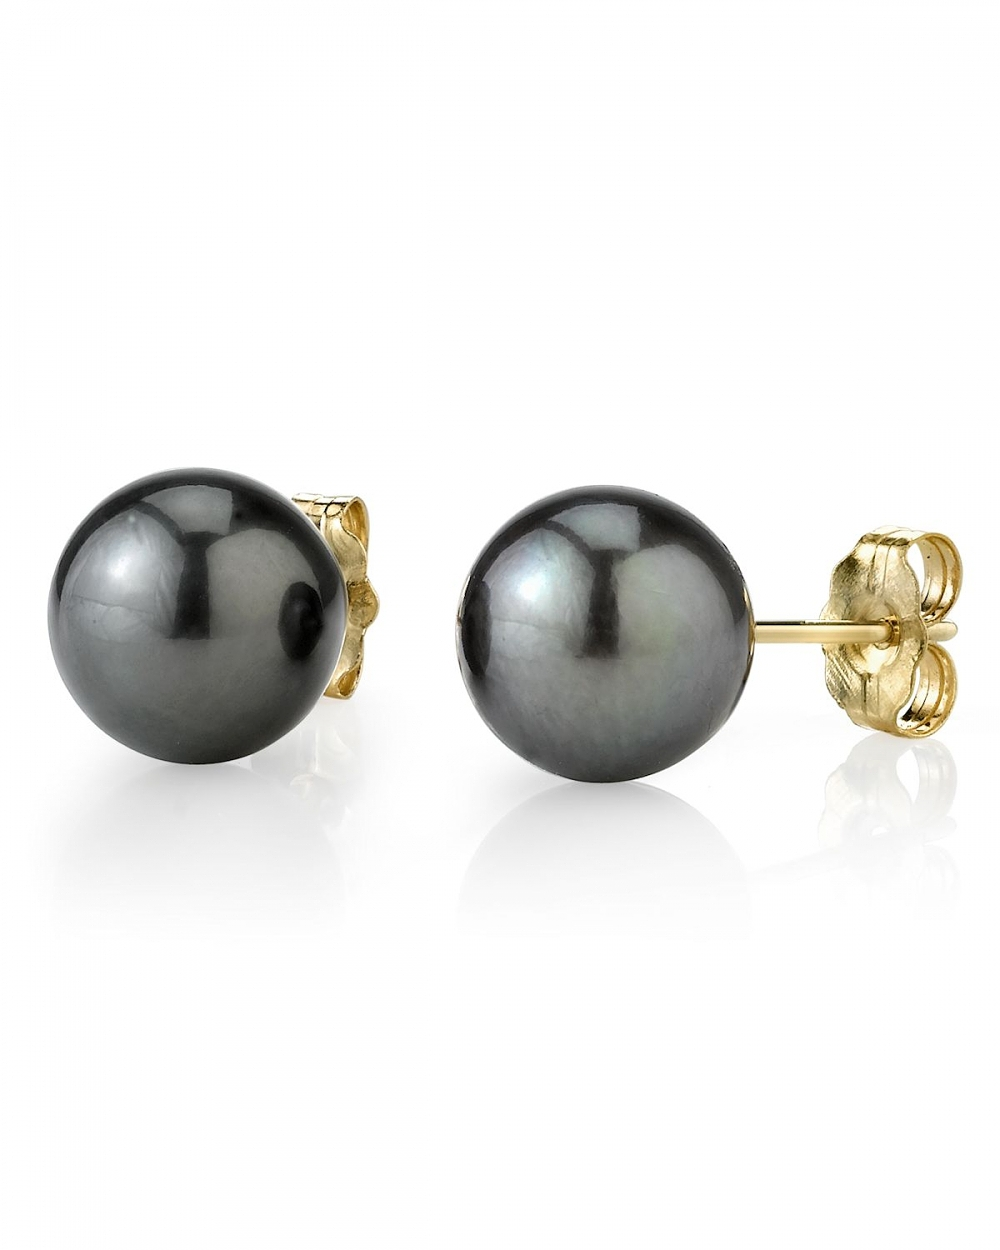 pearl earrings 9mm tahitian south sea pearl stud earrings- various colors jmdrnkv